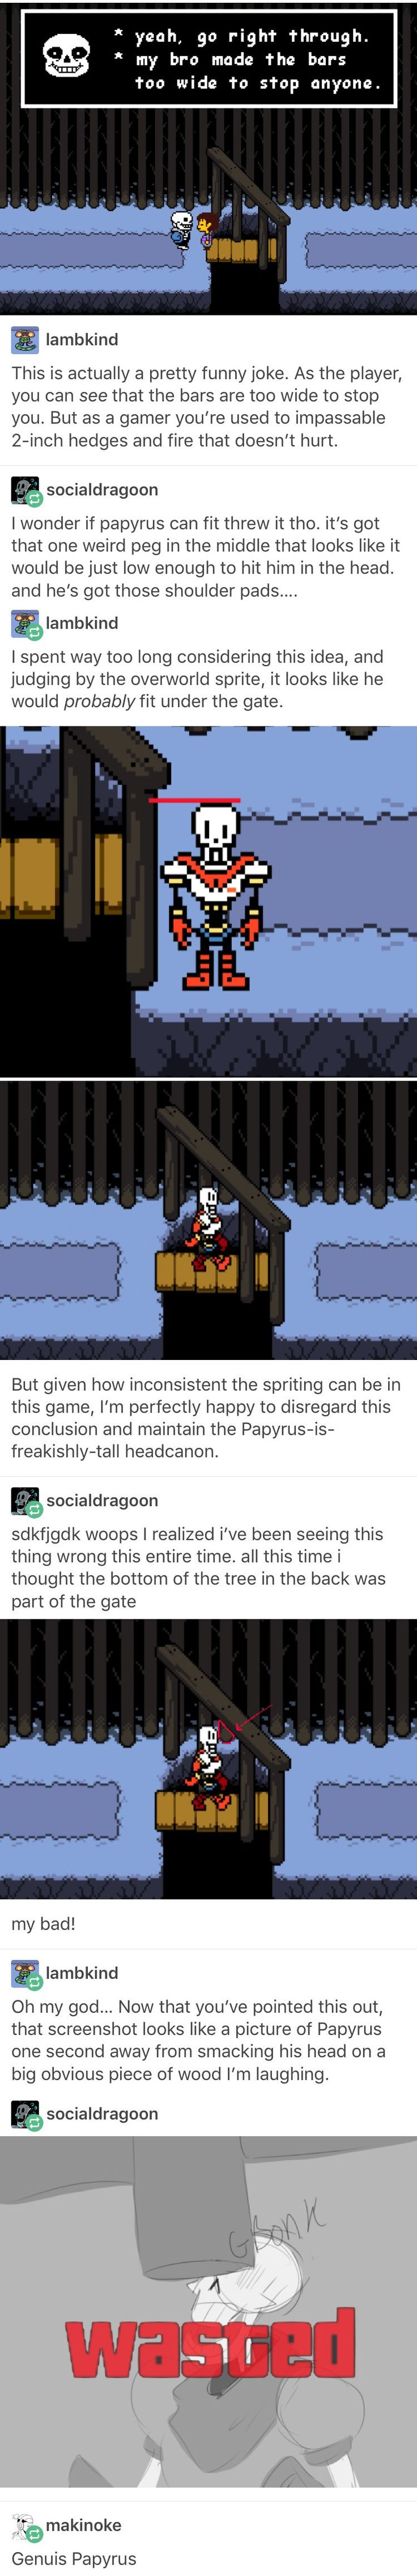 Undertale, Sans, Papyrus, Tumblr, Funny, Video Games